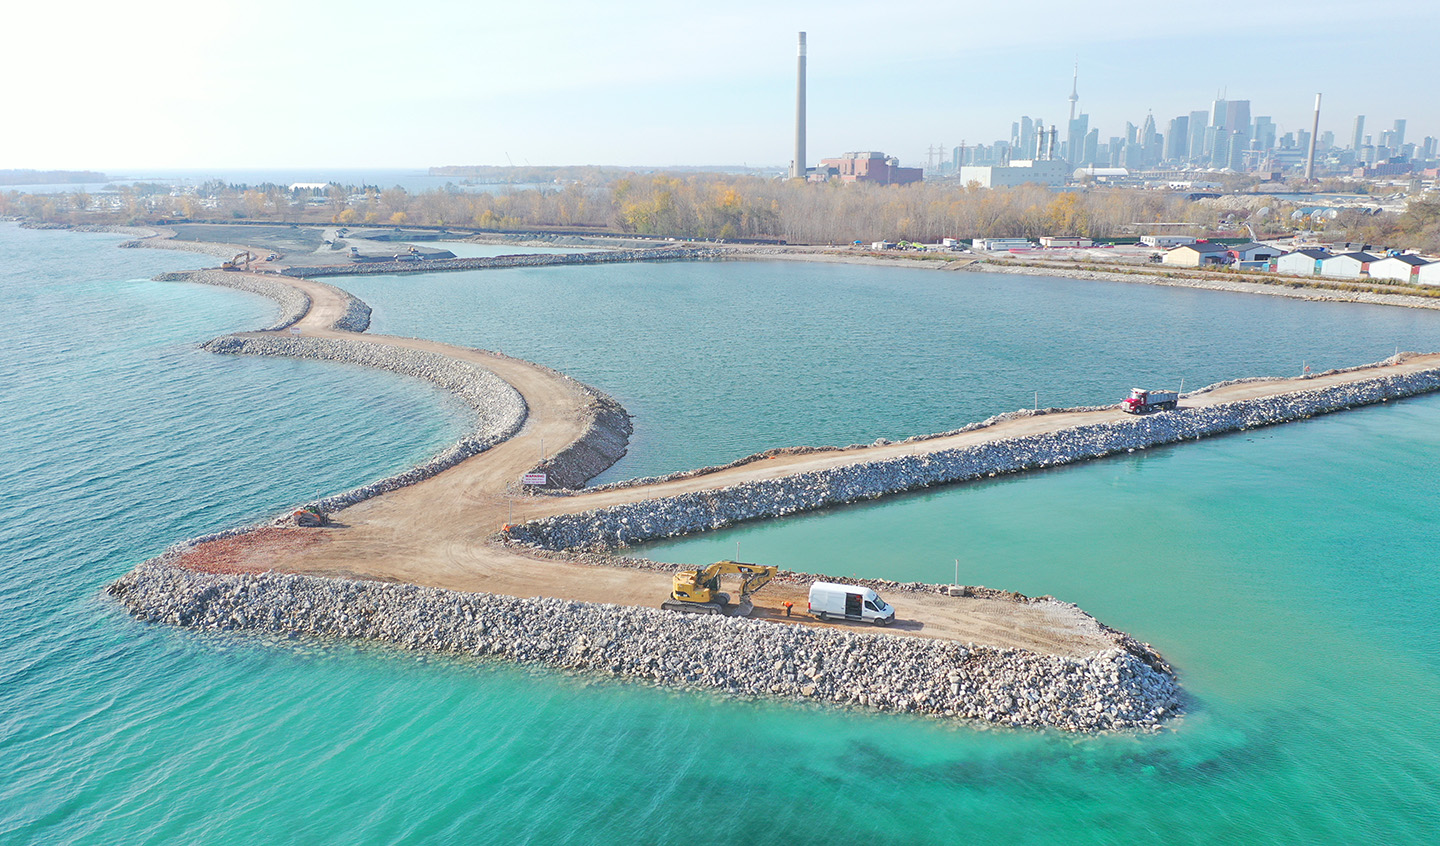 aerial view of Ashbridges Bay Landform Project Celll 2 and 3 Berms photographed in November 2020